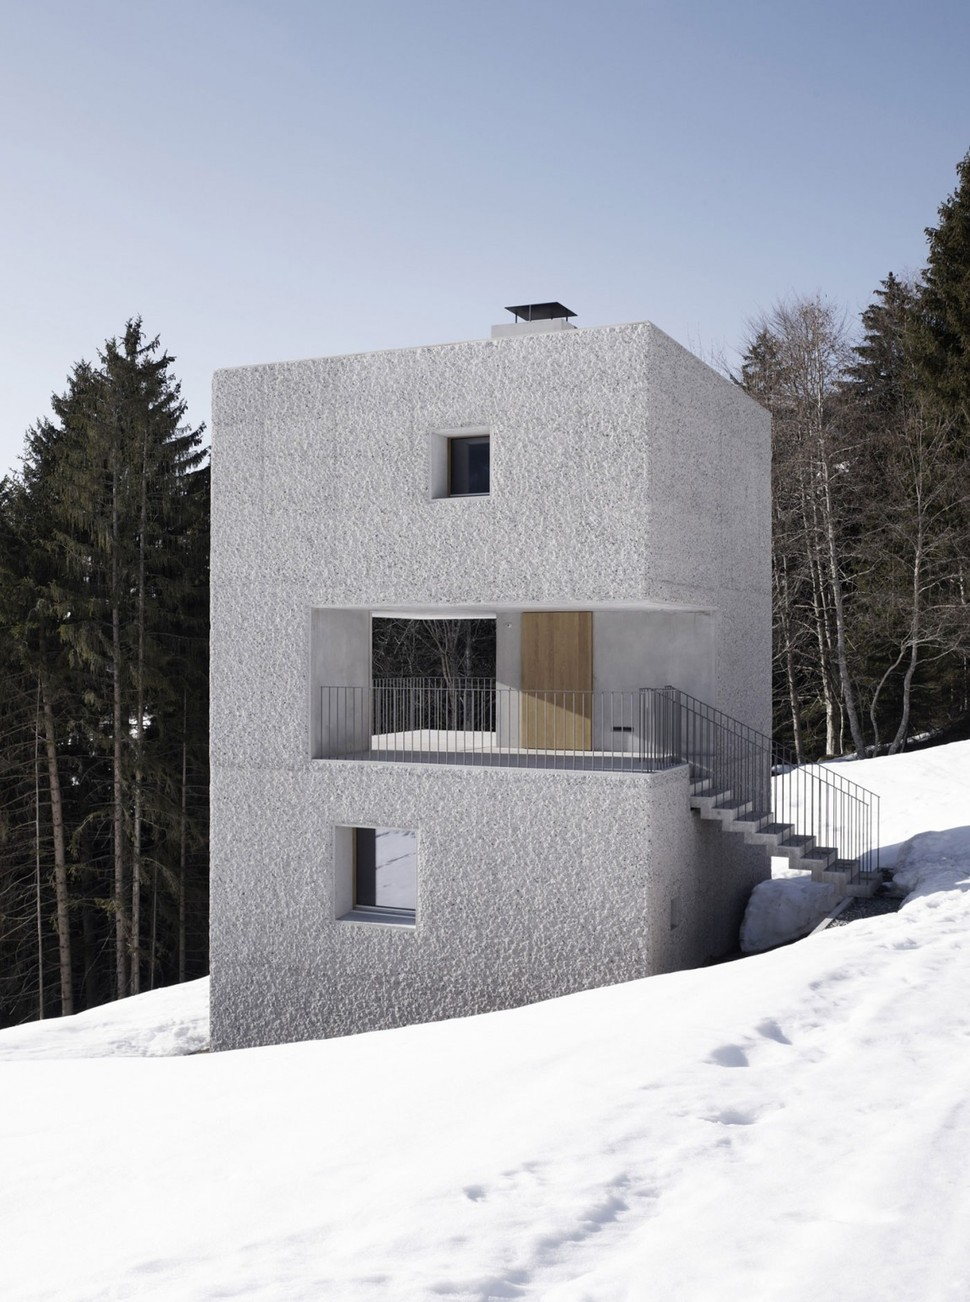 Concrete Tiny House Plans Gallery 4moltqacom